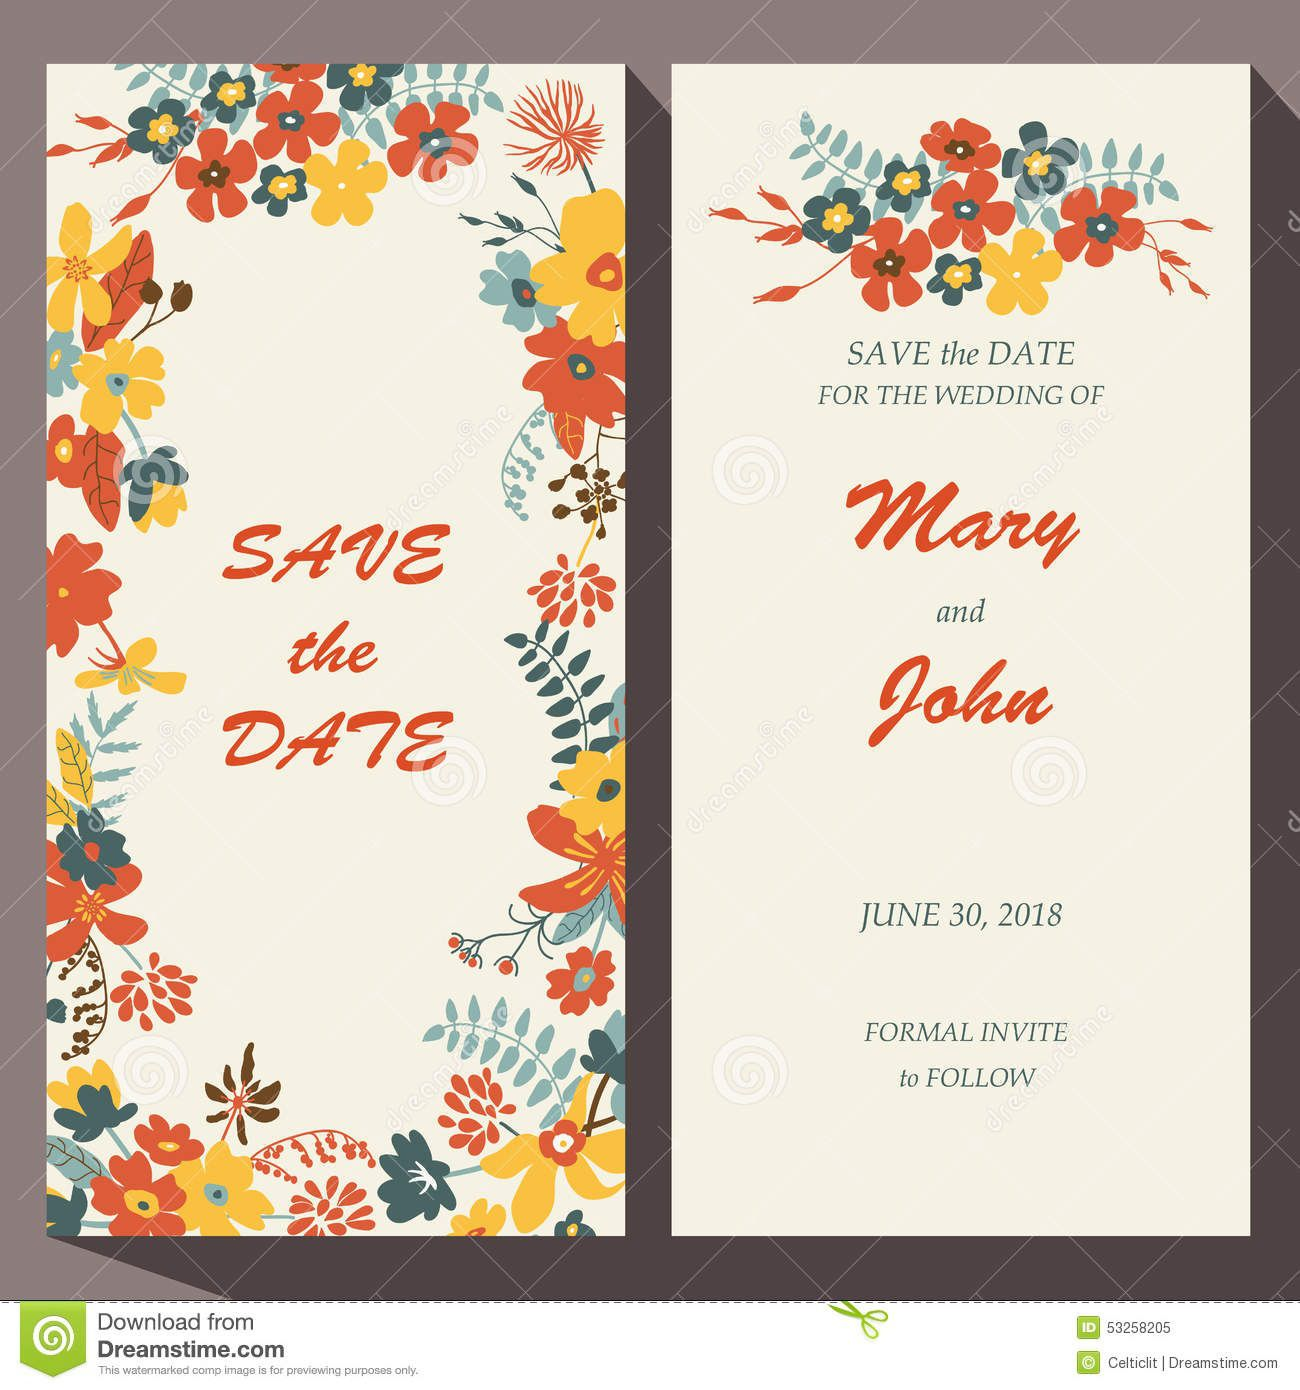 009 Unbelievable Free Save The Date Birthday Postcard Template Concept  TemplatesFull